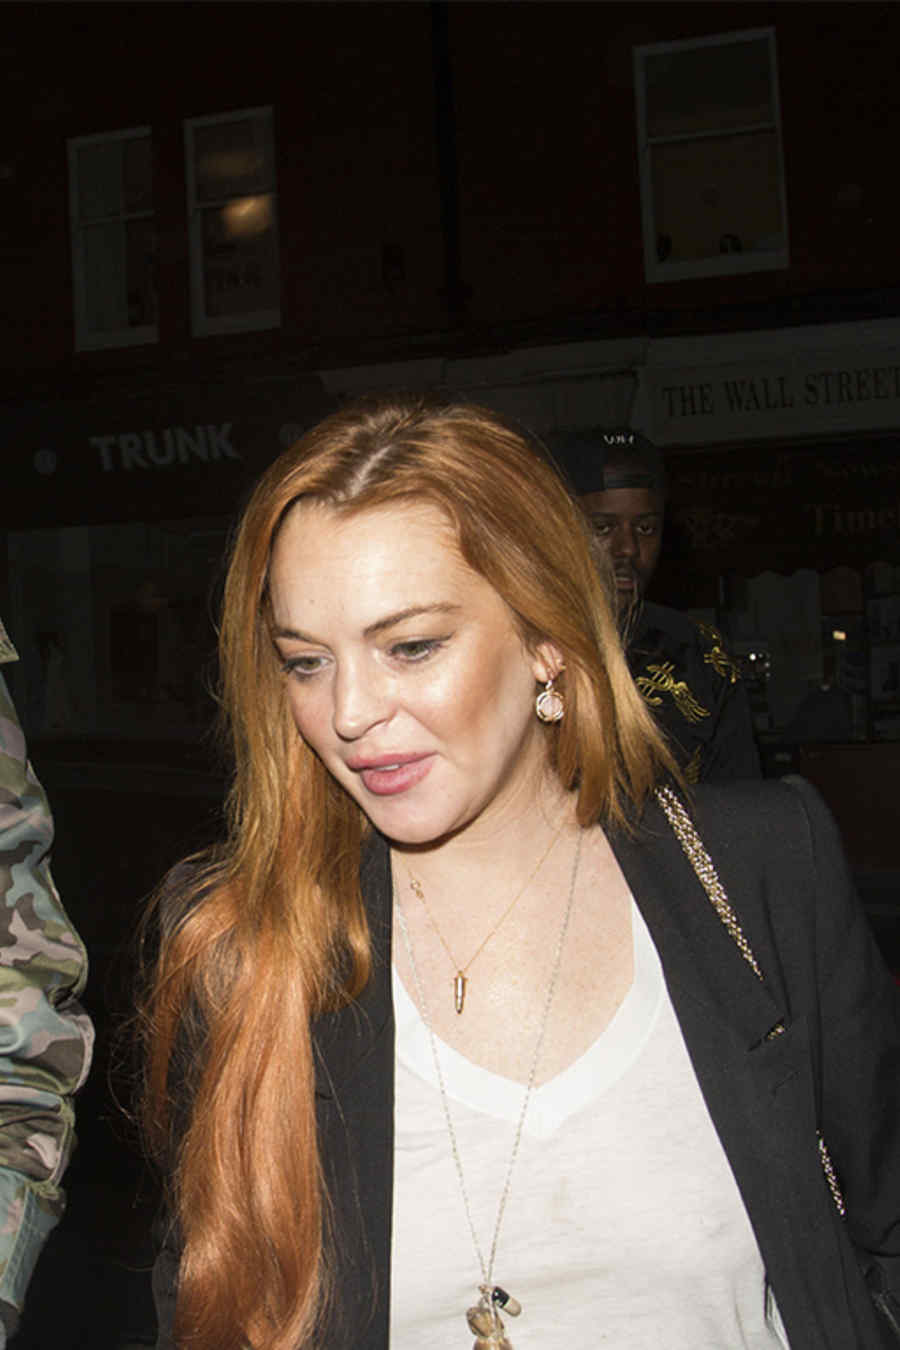 Actress Lindsay Lohan looks cheerful as she arrives at Chiltern Firehouse with friends wearing a bra less white t-shirt in London